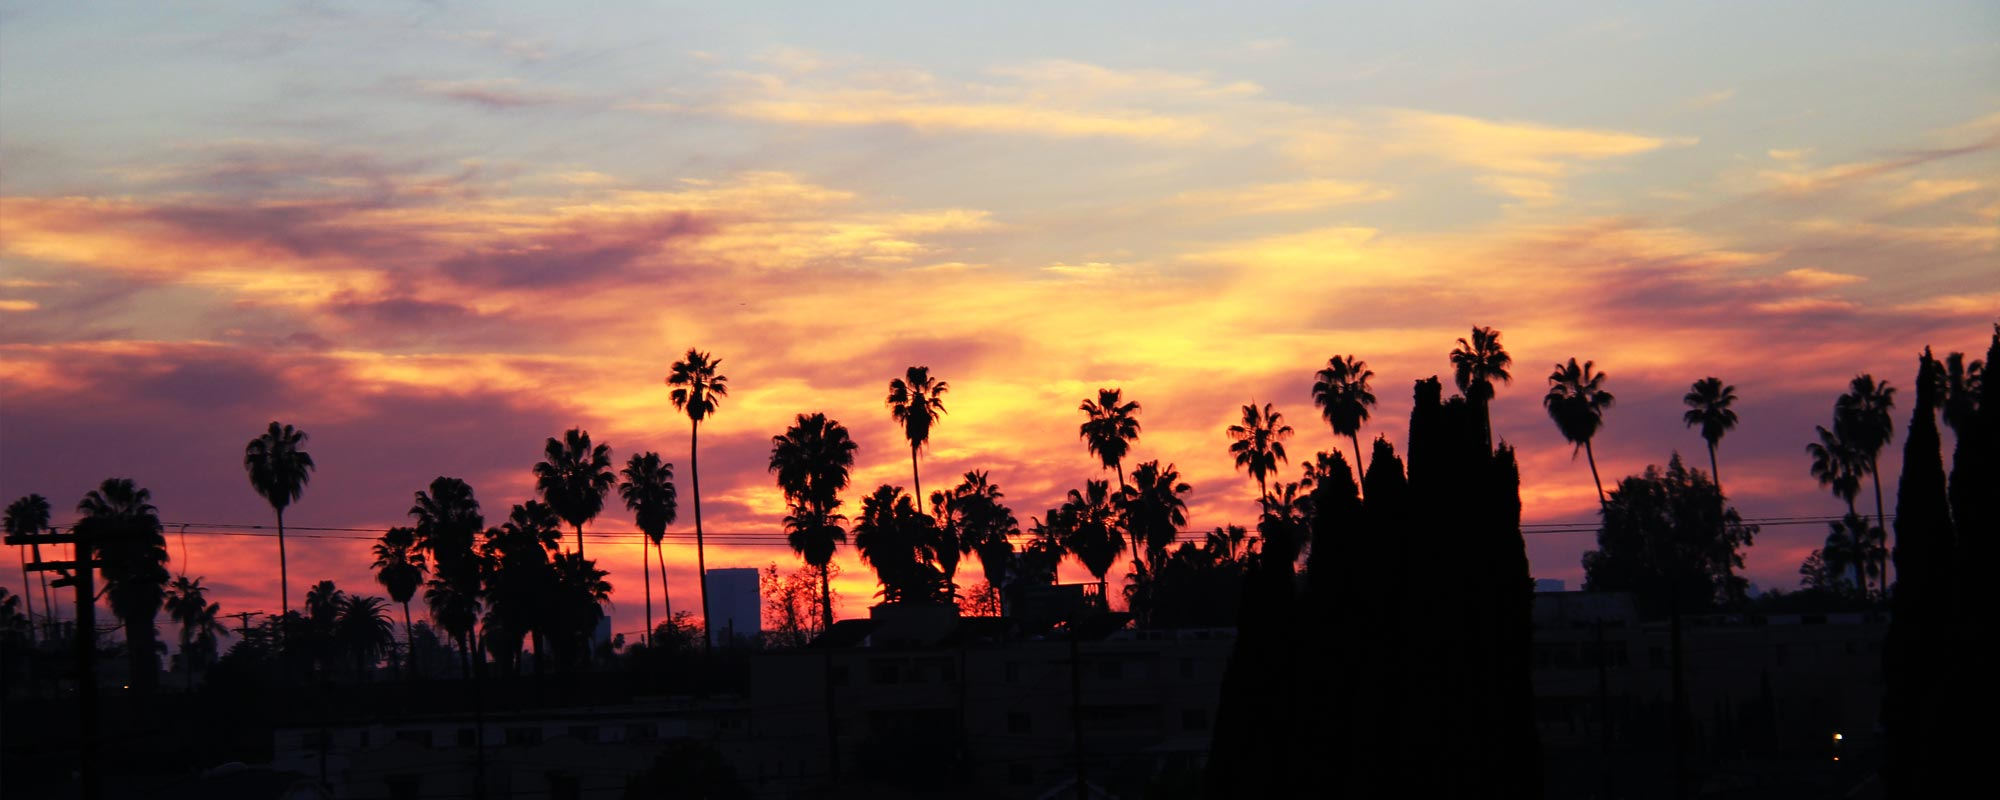 A rich sunset silhouettes the palm trees of Los Angeles.